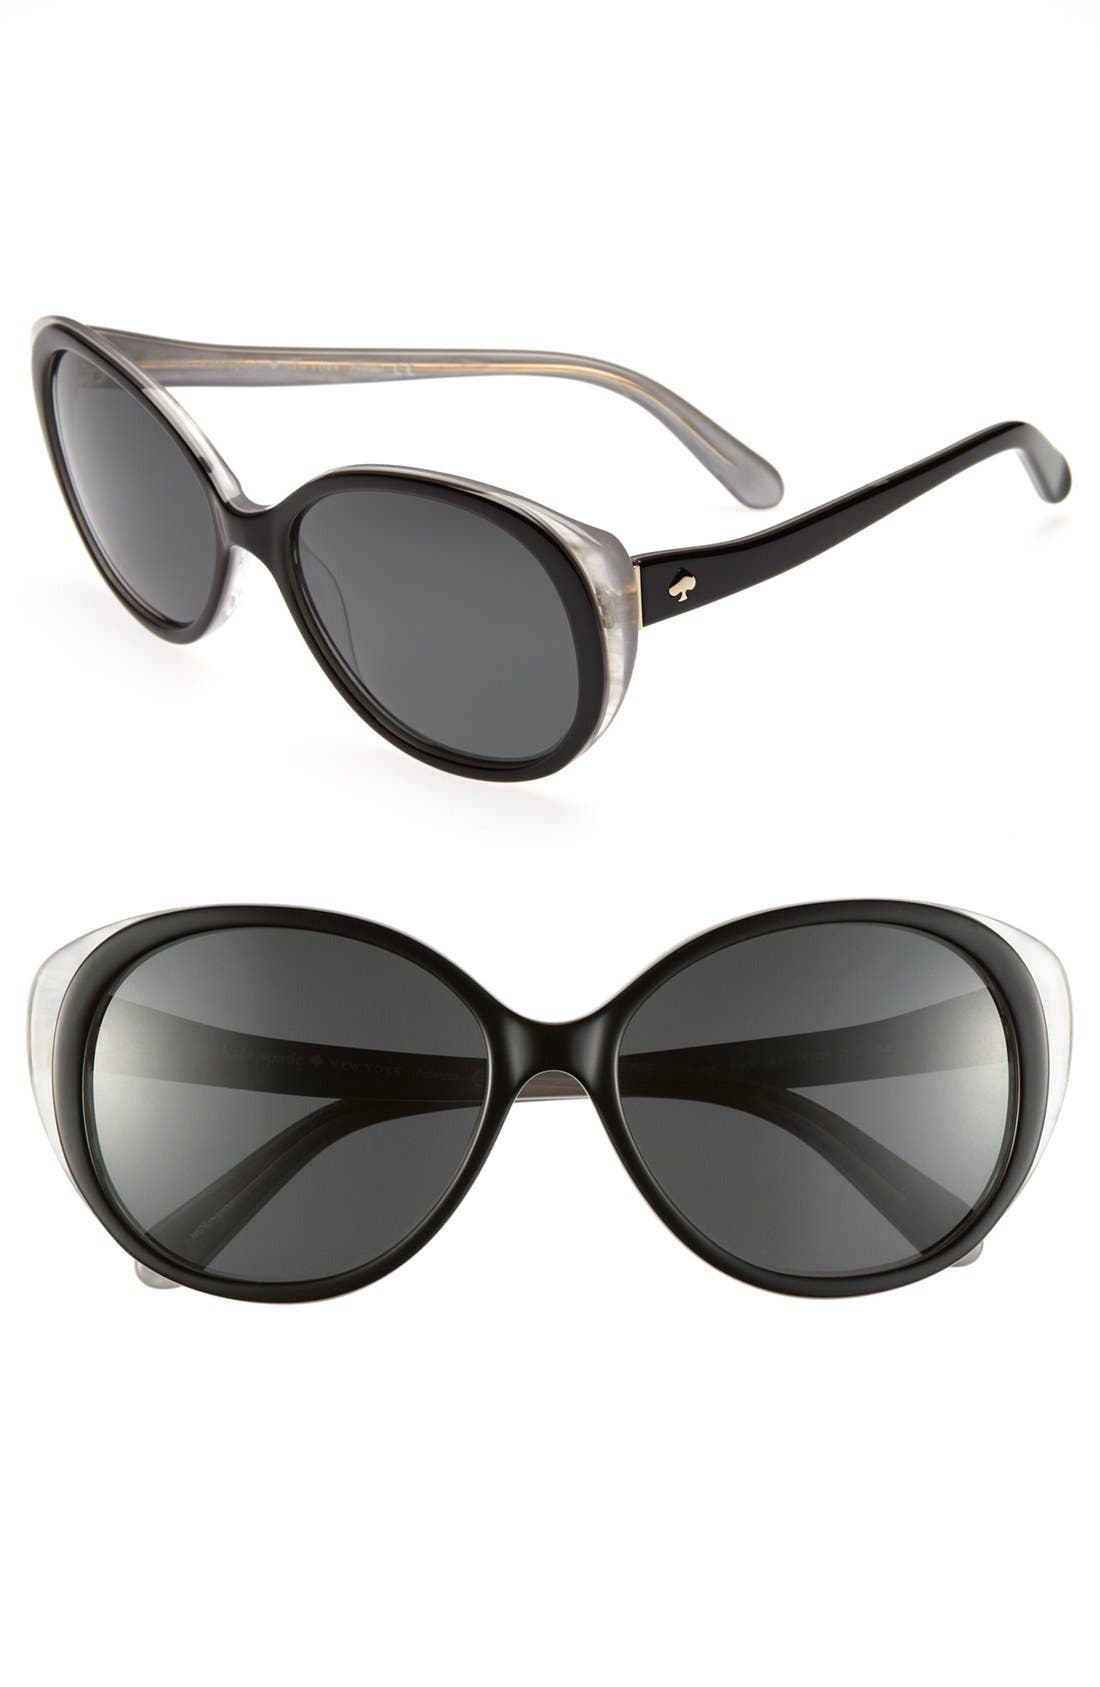 Alternate Image 1 Selected - kate spade new york 'finola' 56mm polarized sunglasses